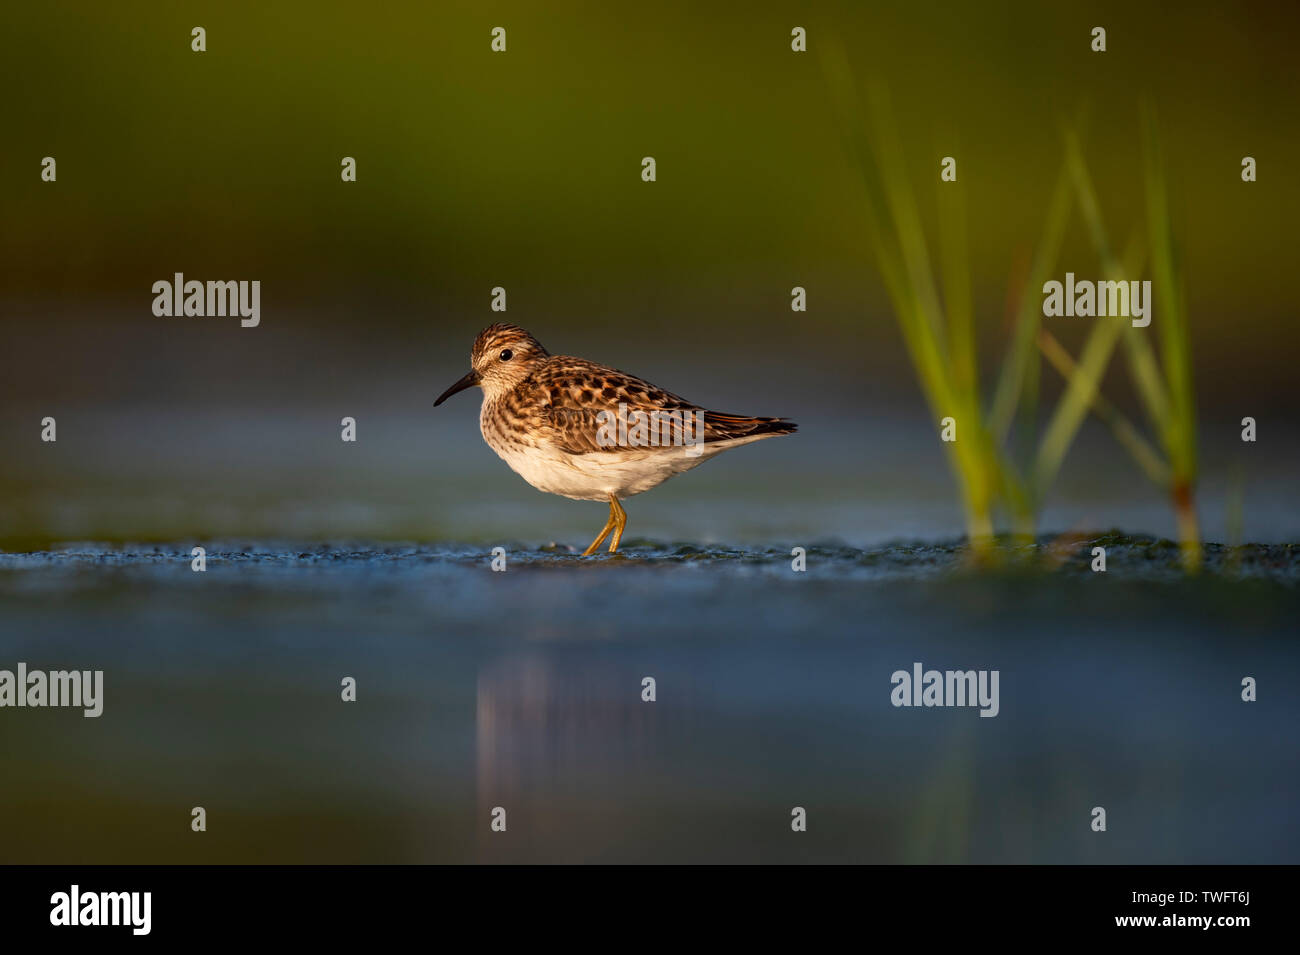 A tiny Least Sandpiper stands in shallow water with bright green marsh grasses in the golden morning sunlight. - Stock Image